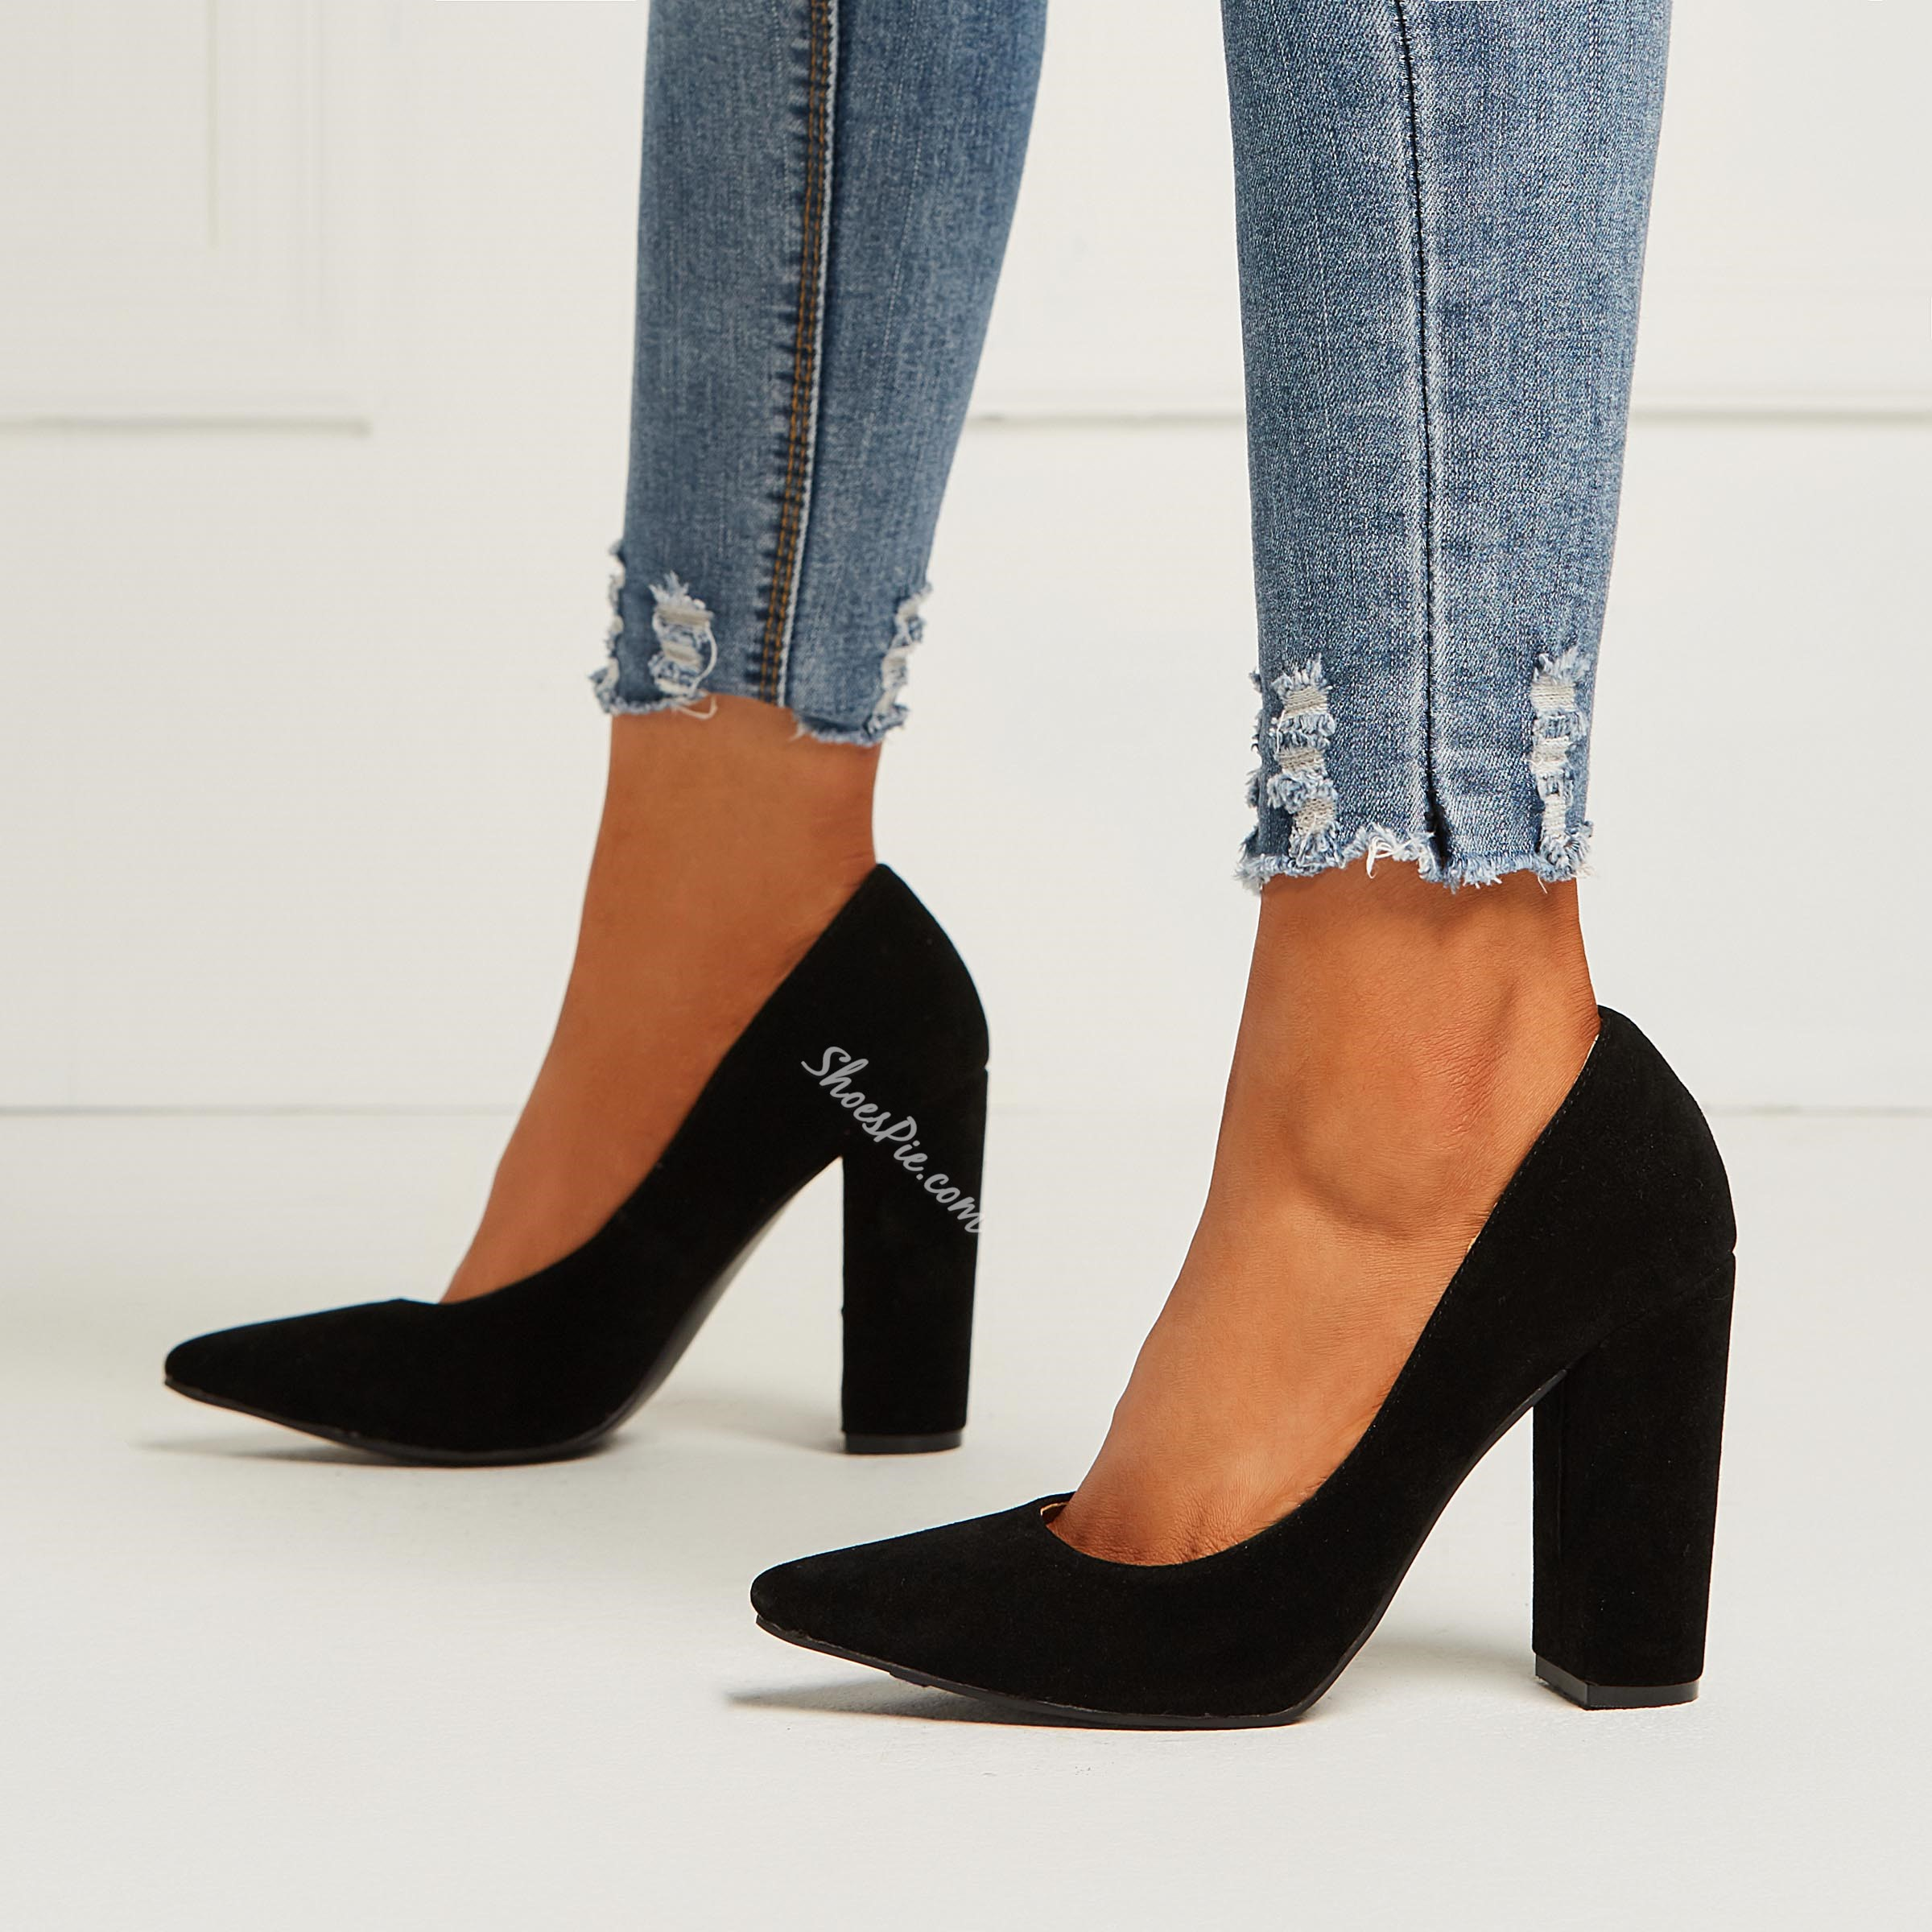 ae25a99a8d9 Shoespie Suede Solid Black Slip On Chunky Heel Pumps- Shoespie.com